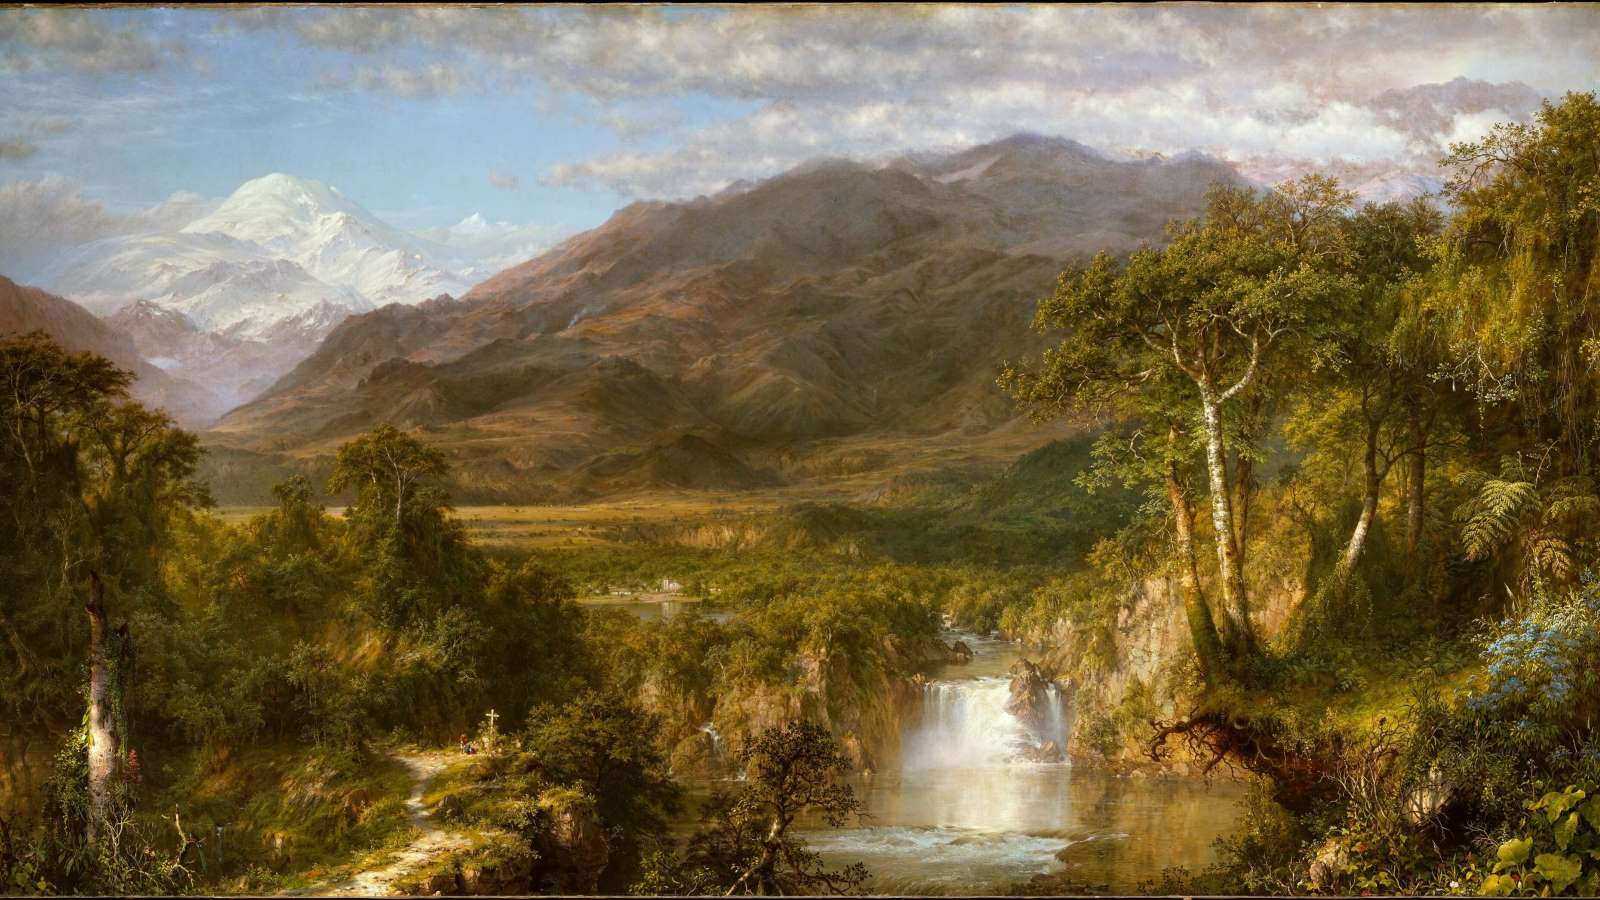 Frederic Church, Heart of the Andes cover